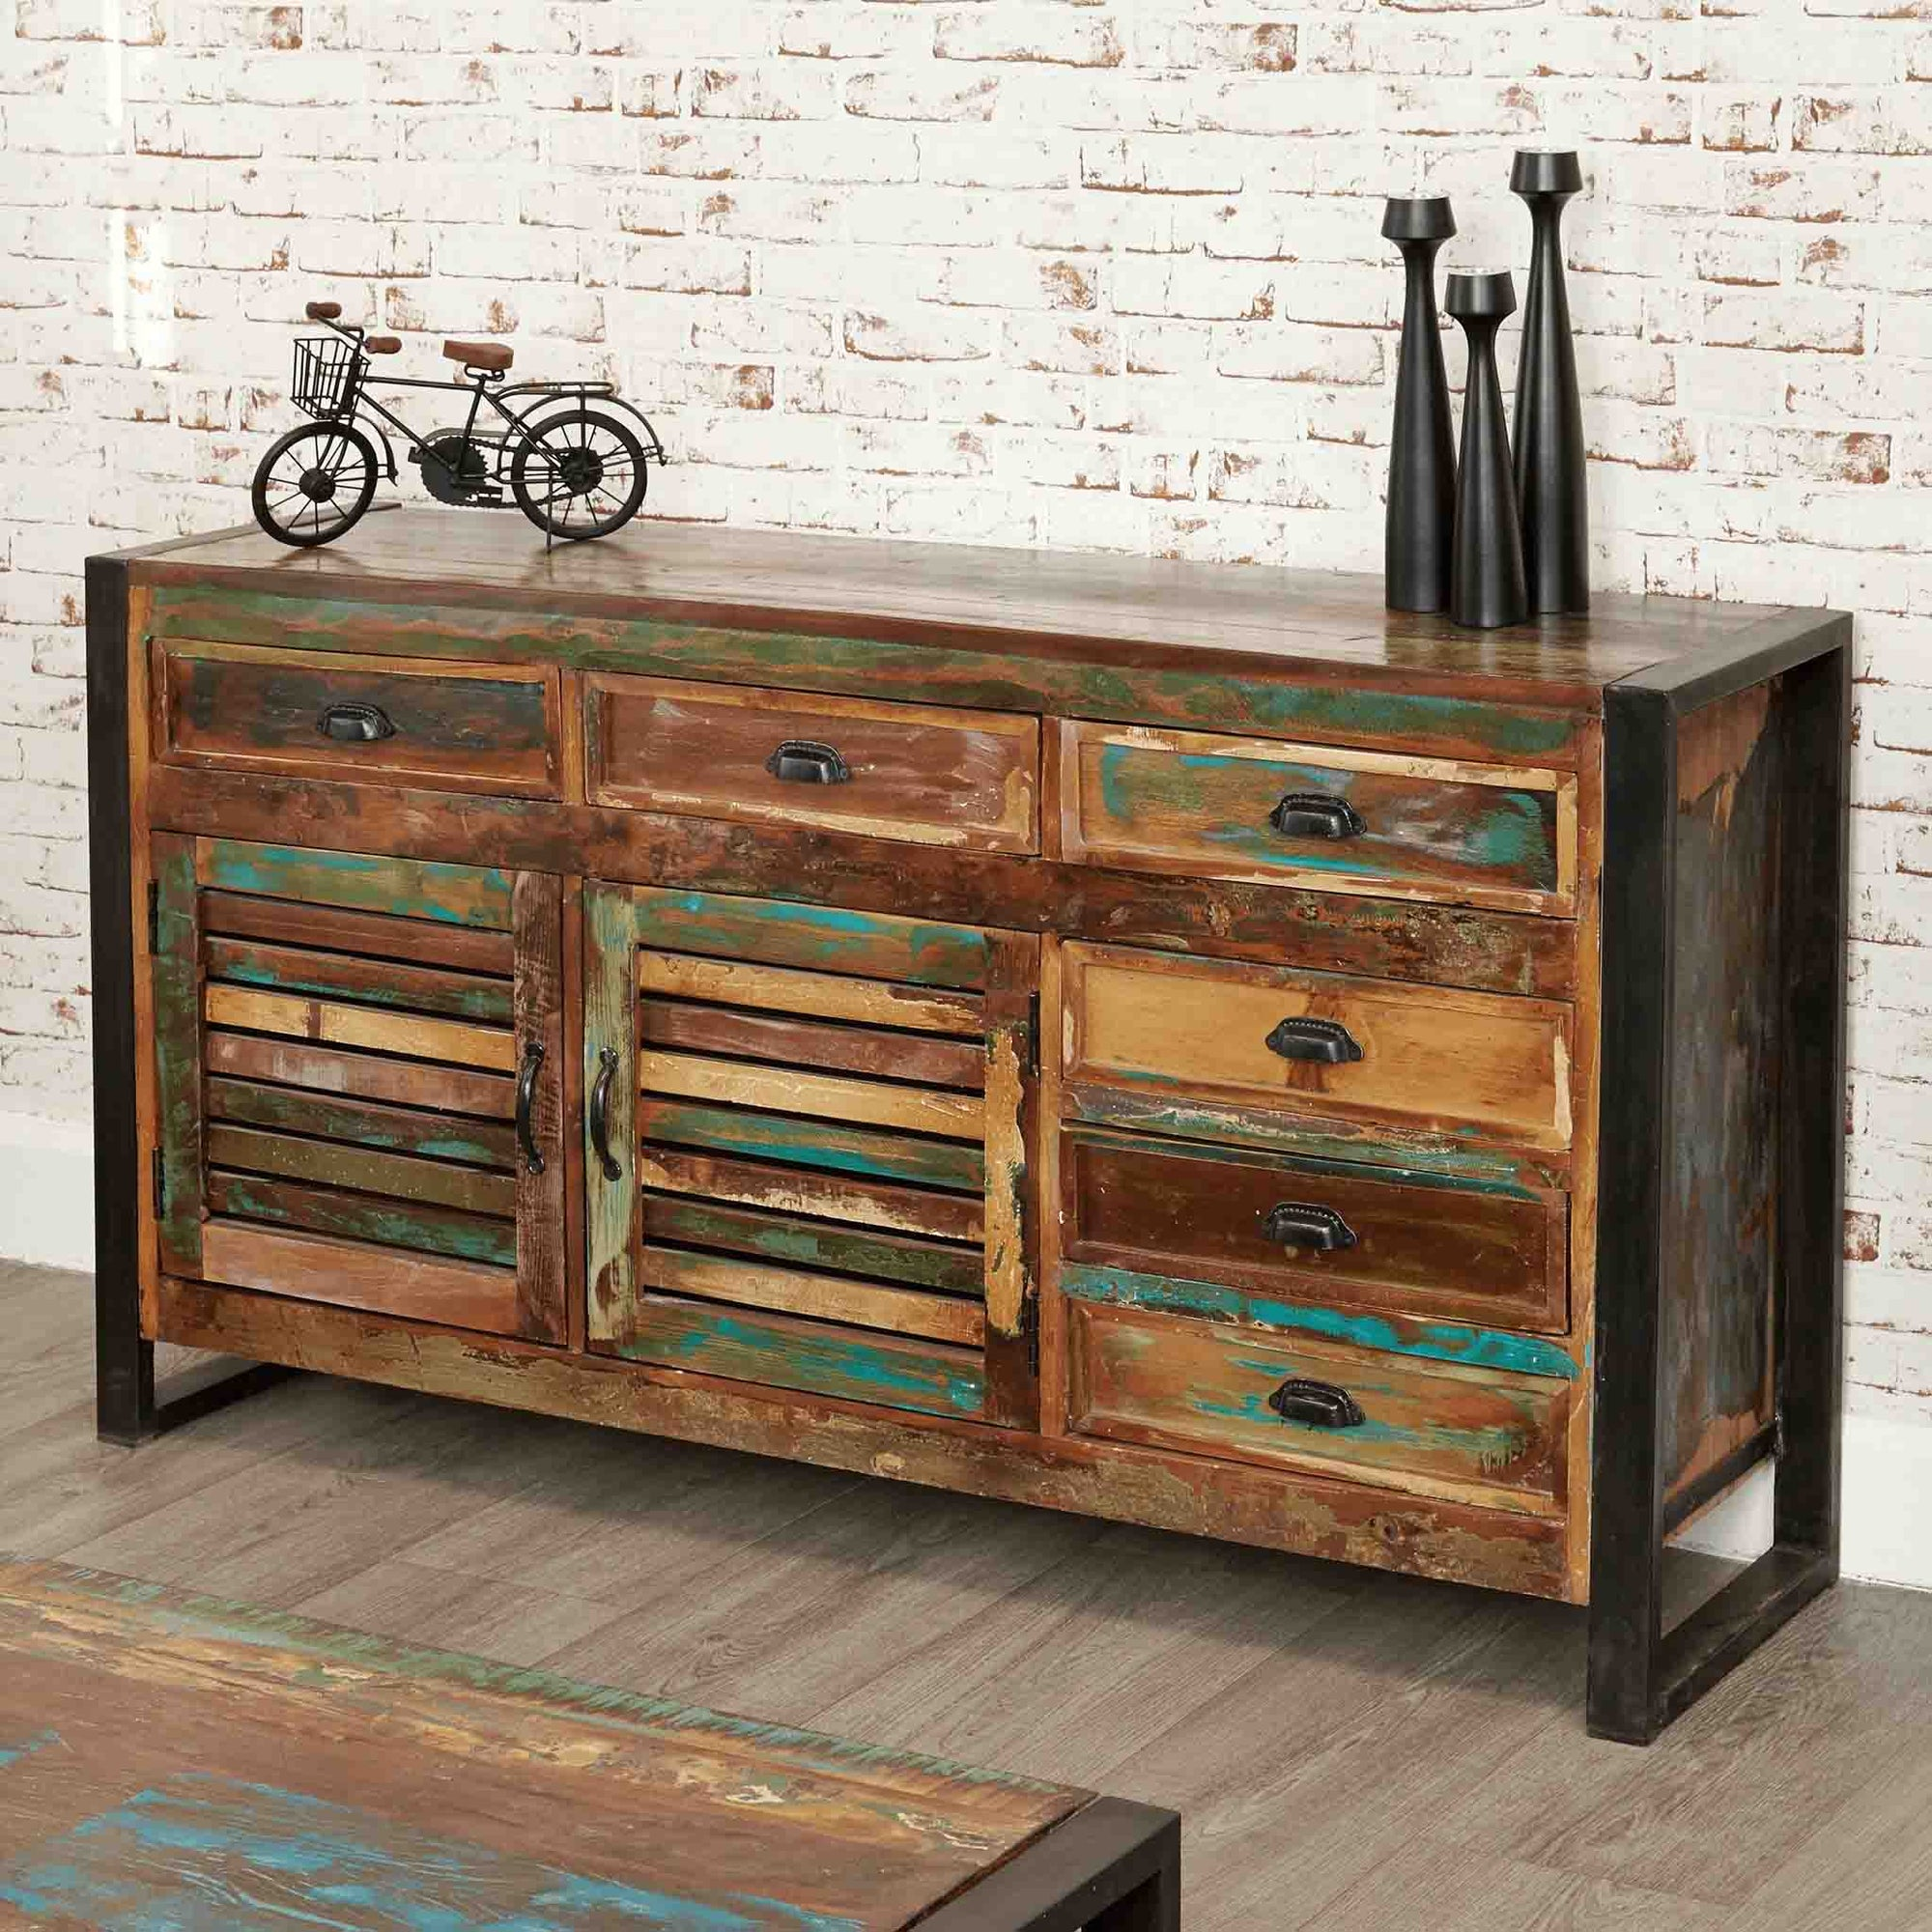 The Urban Chic Industrial Reclaimed Wood Large Sideboard from Roseland Furniture